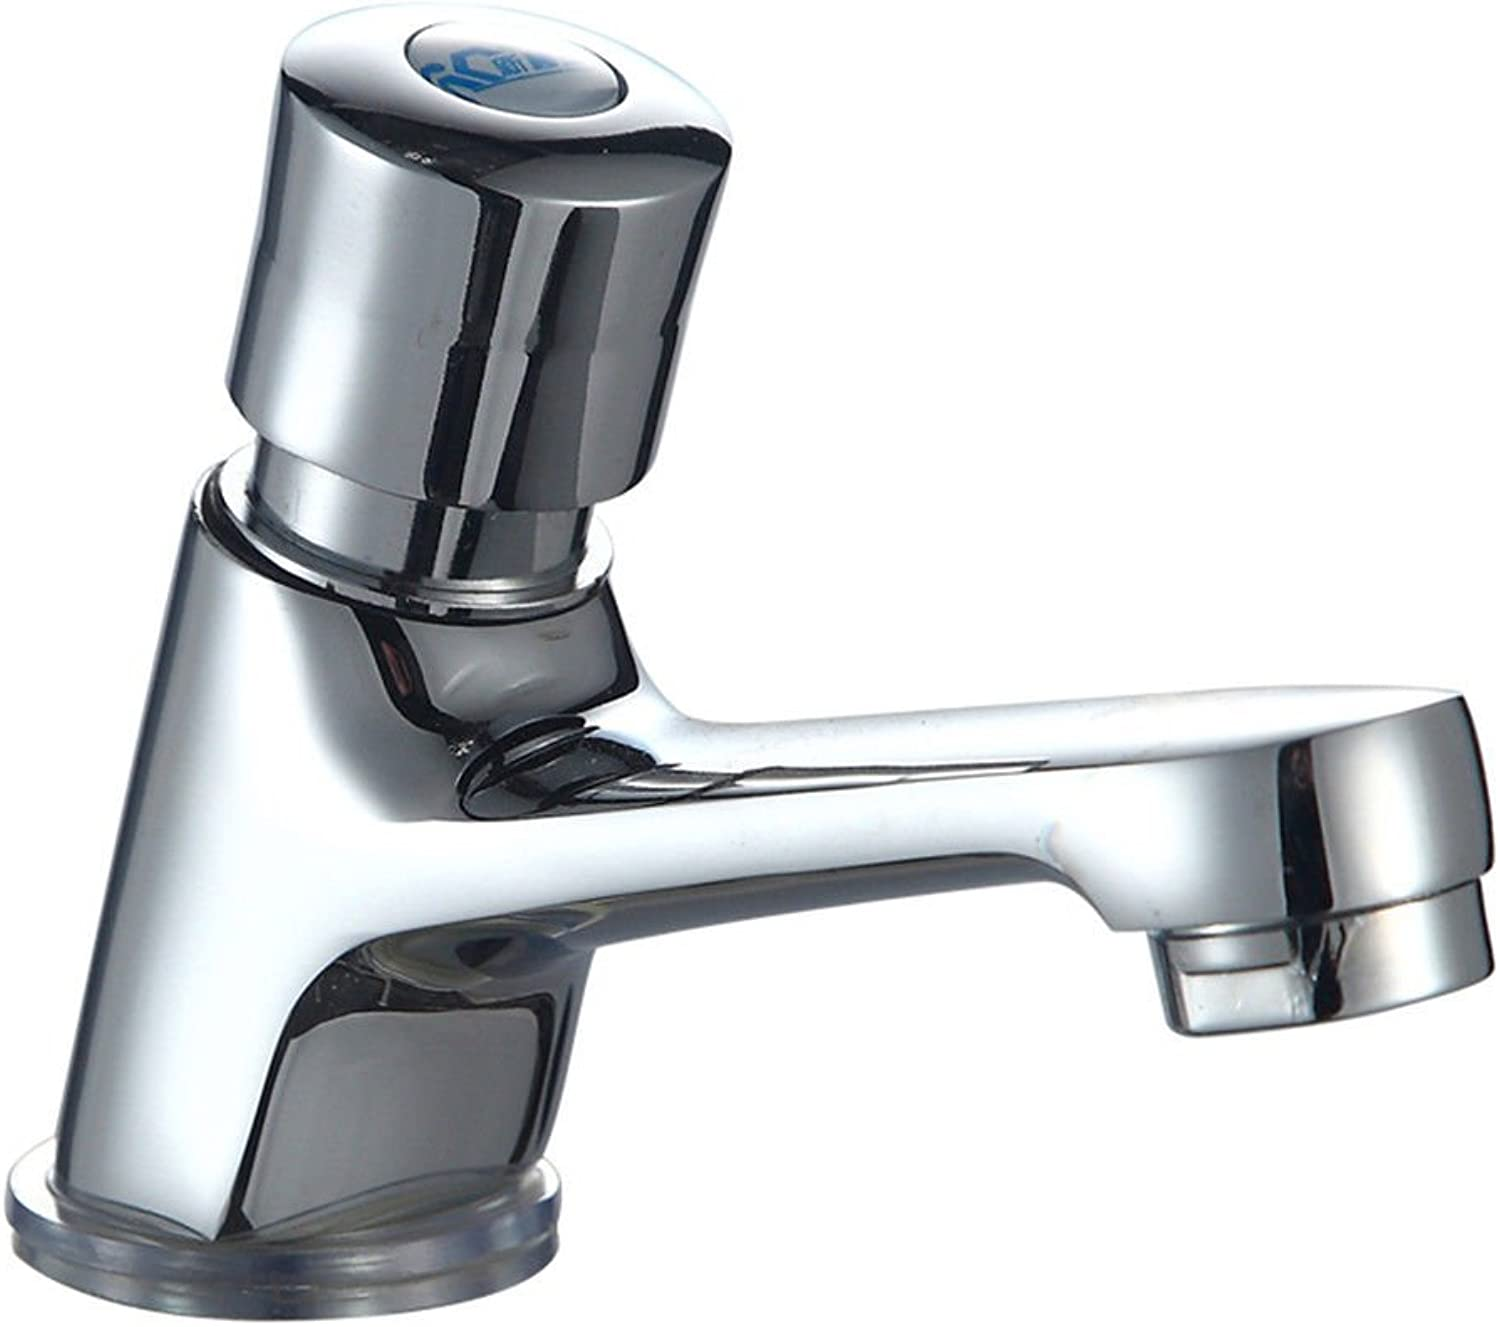 Oudan Basin Mixer Tap Bathroom Sink Faucet The copper basin faucet single cold push delay switch on the bathroom sink public places